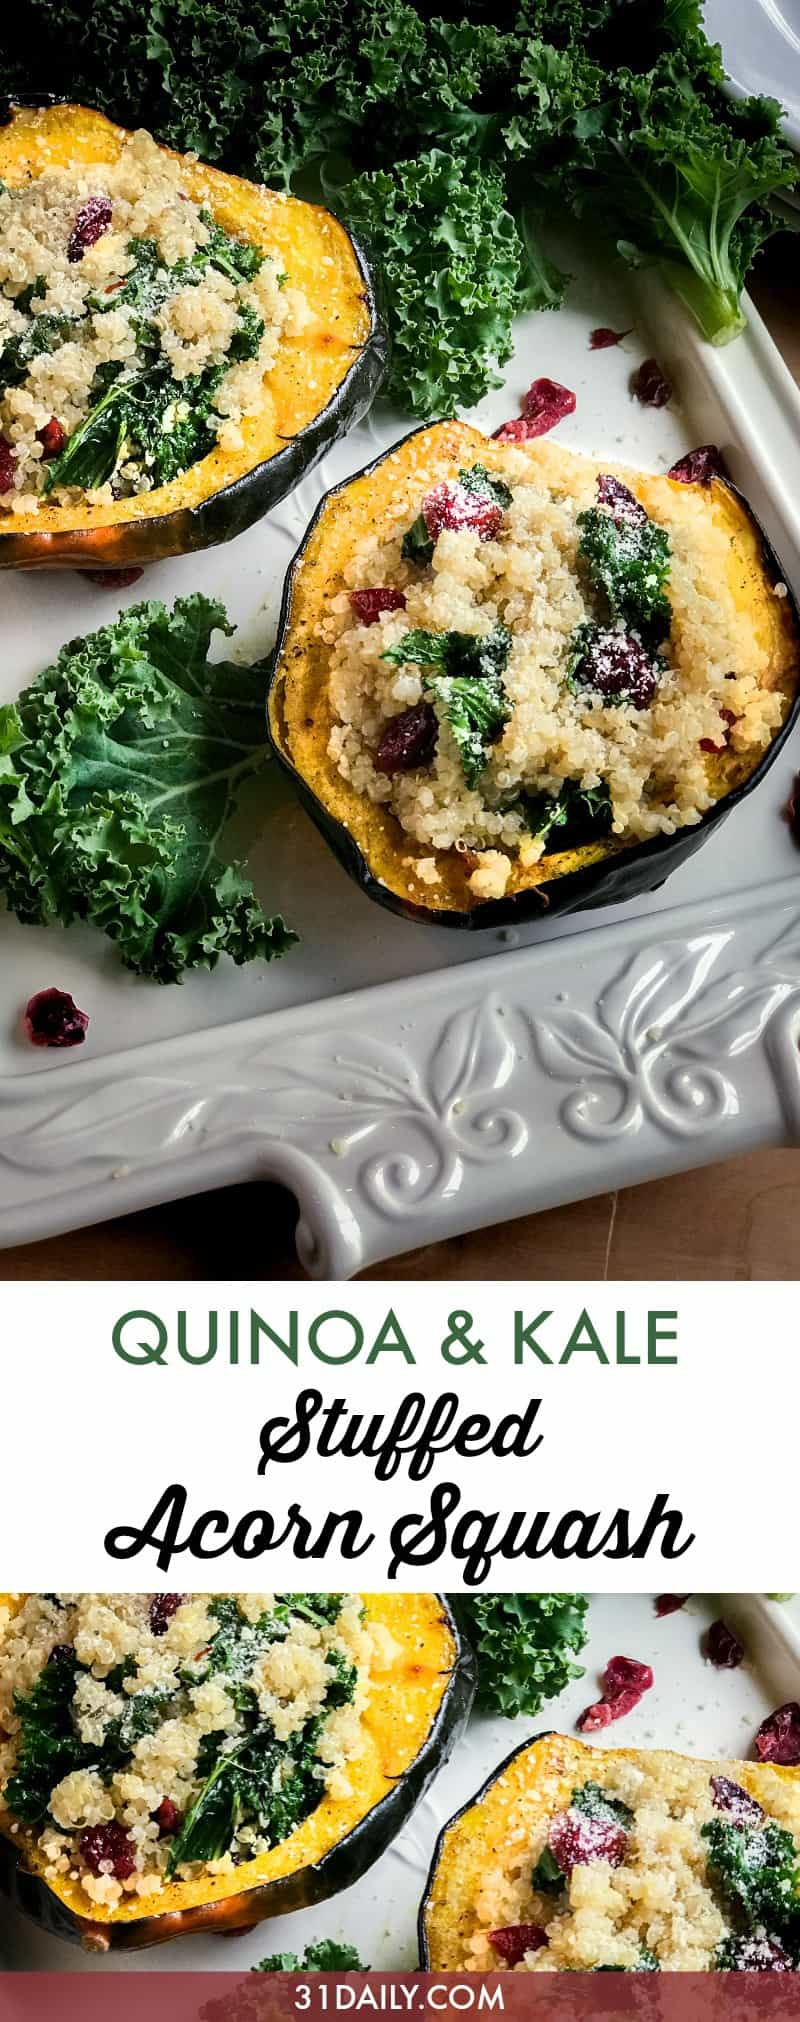 Stuffed Acorn Squash with Quinoa, Kale and Cranberries | 31Daily.com